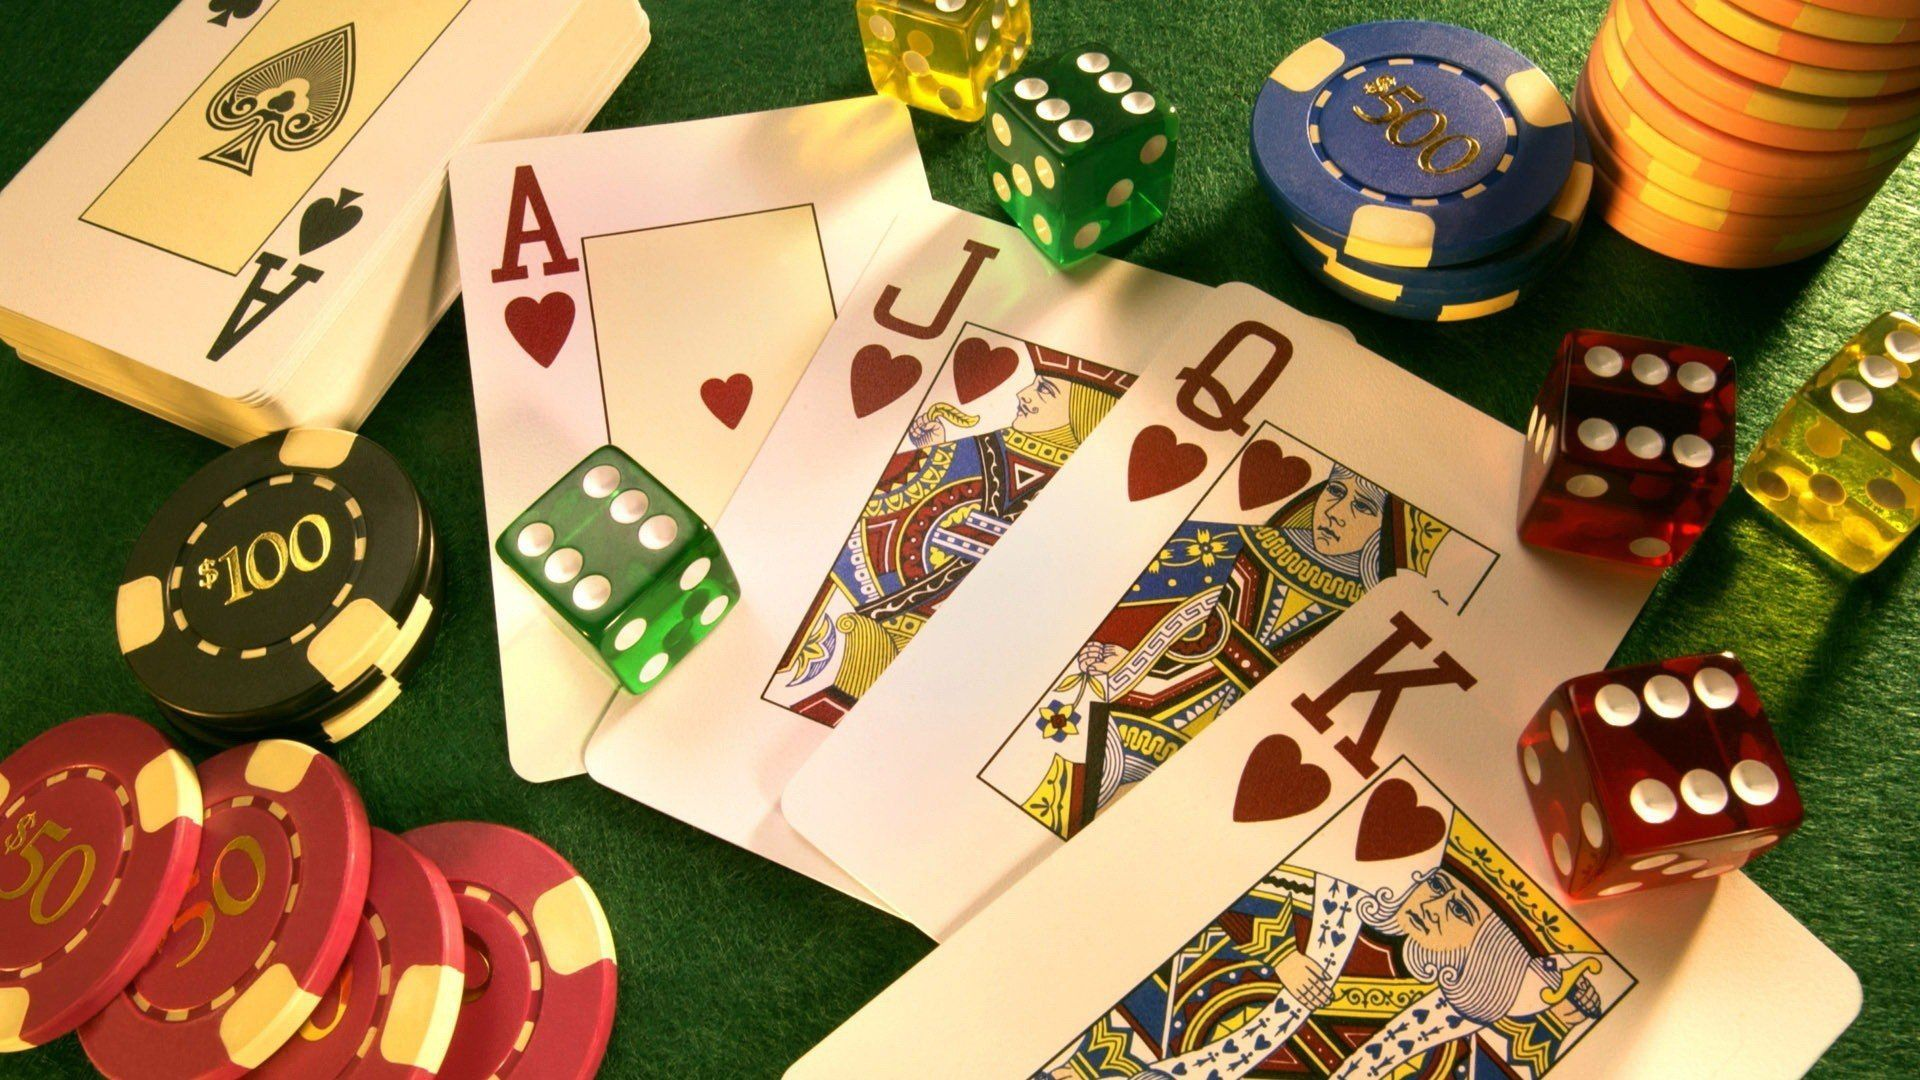 What Are You Able To Do To Save Your Casino From Destruction?